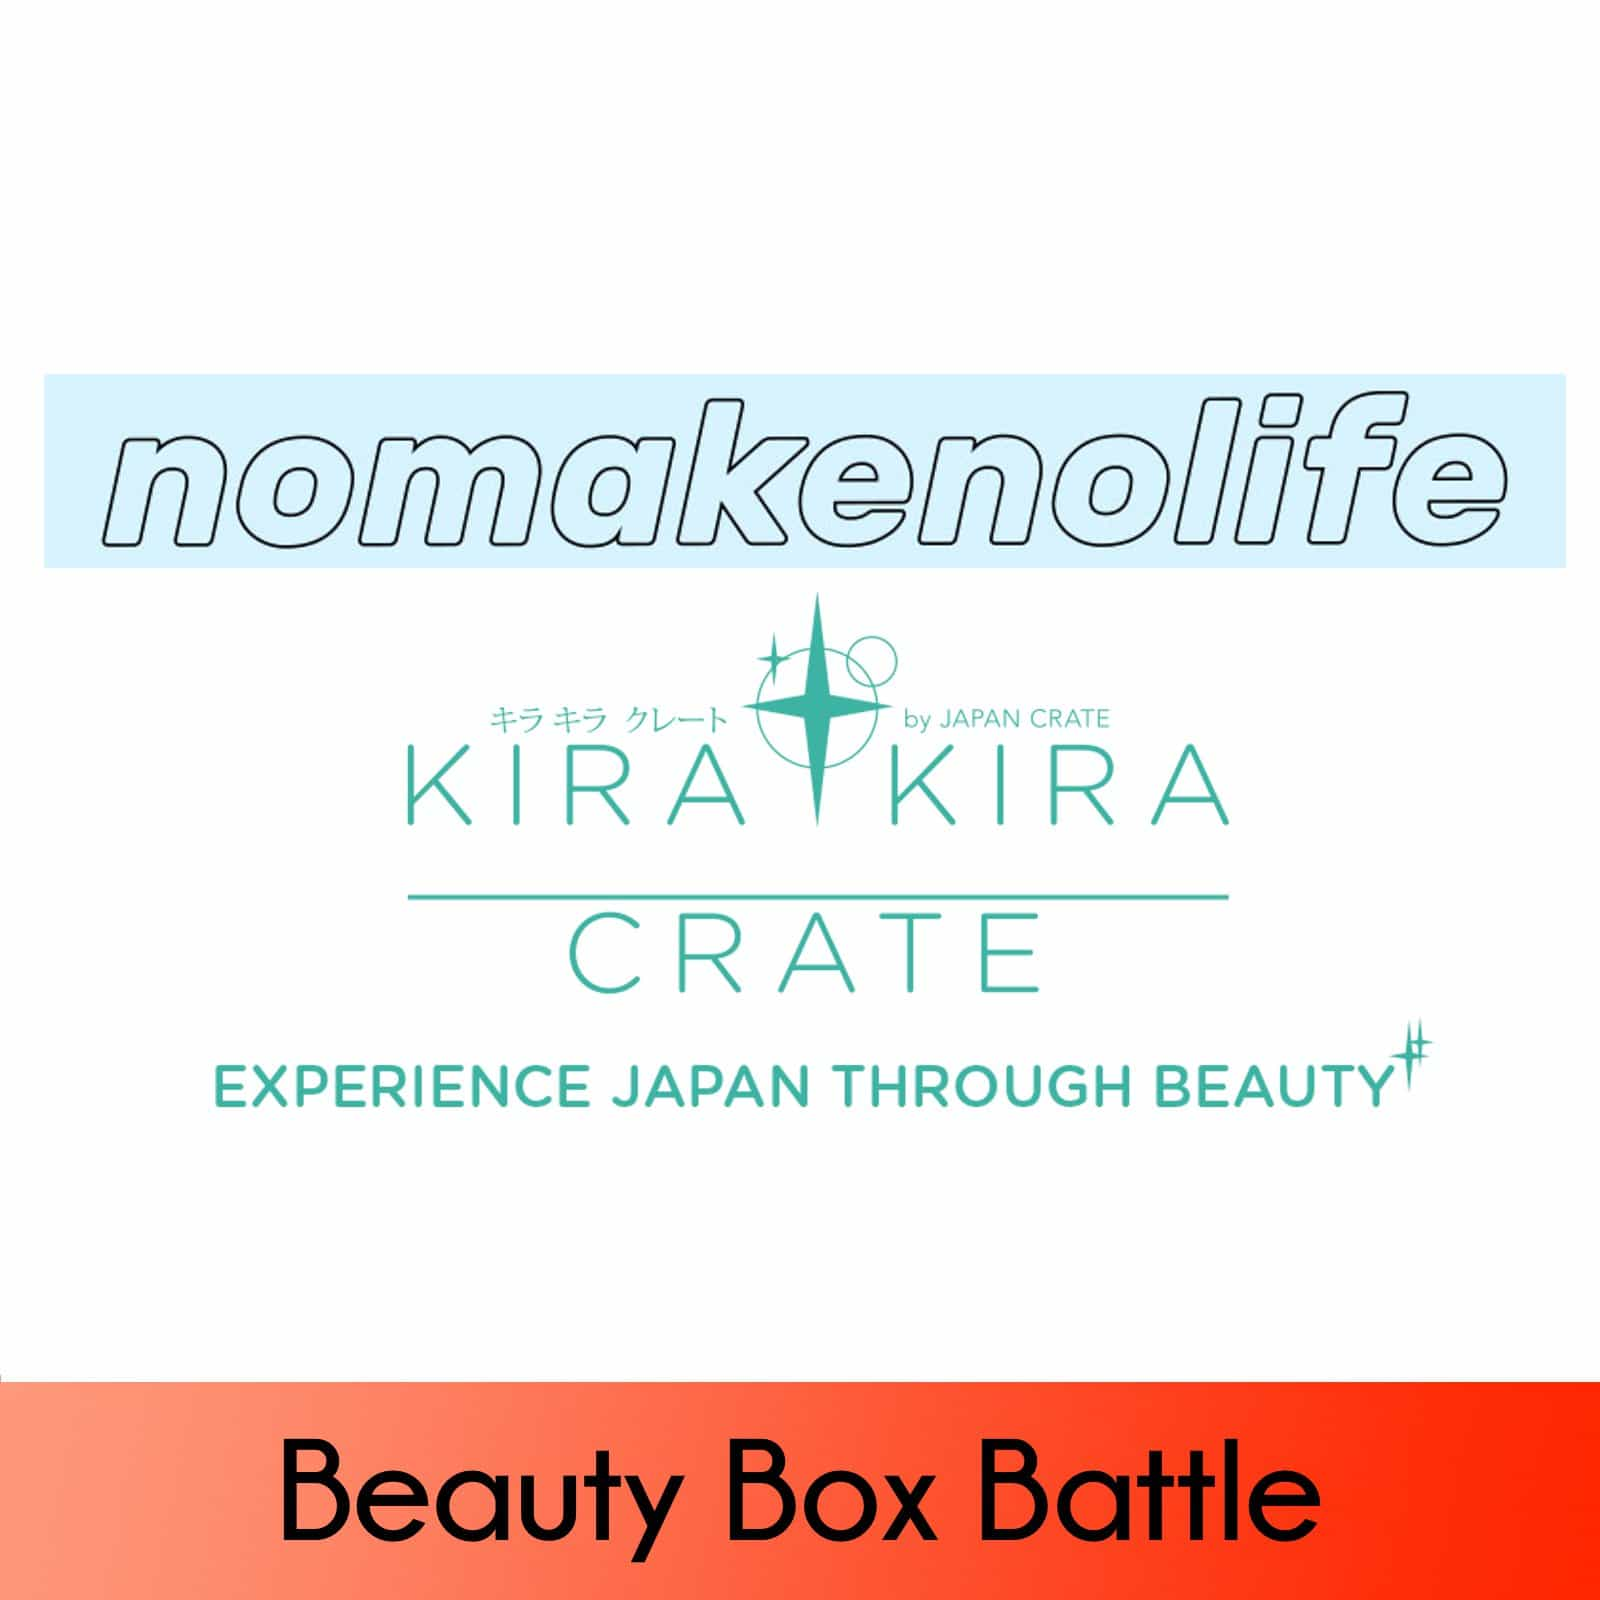 nmnl vs Kira Kira Crate – January 2018 Battle of the Japanese Beauty Boxes!